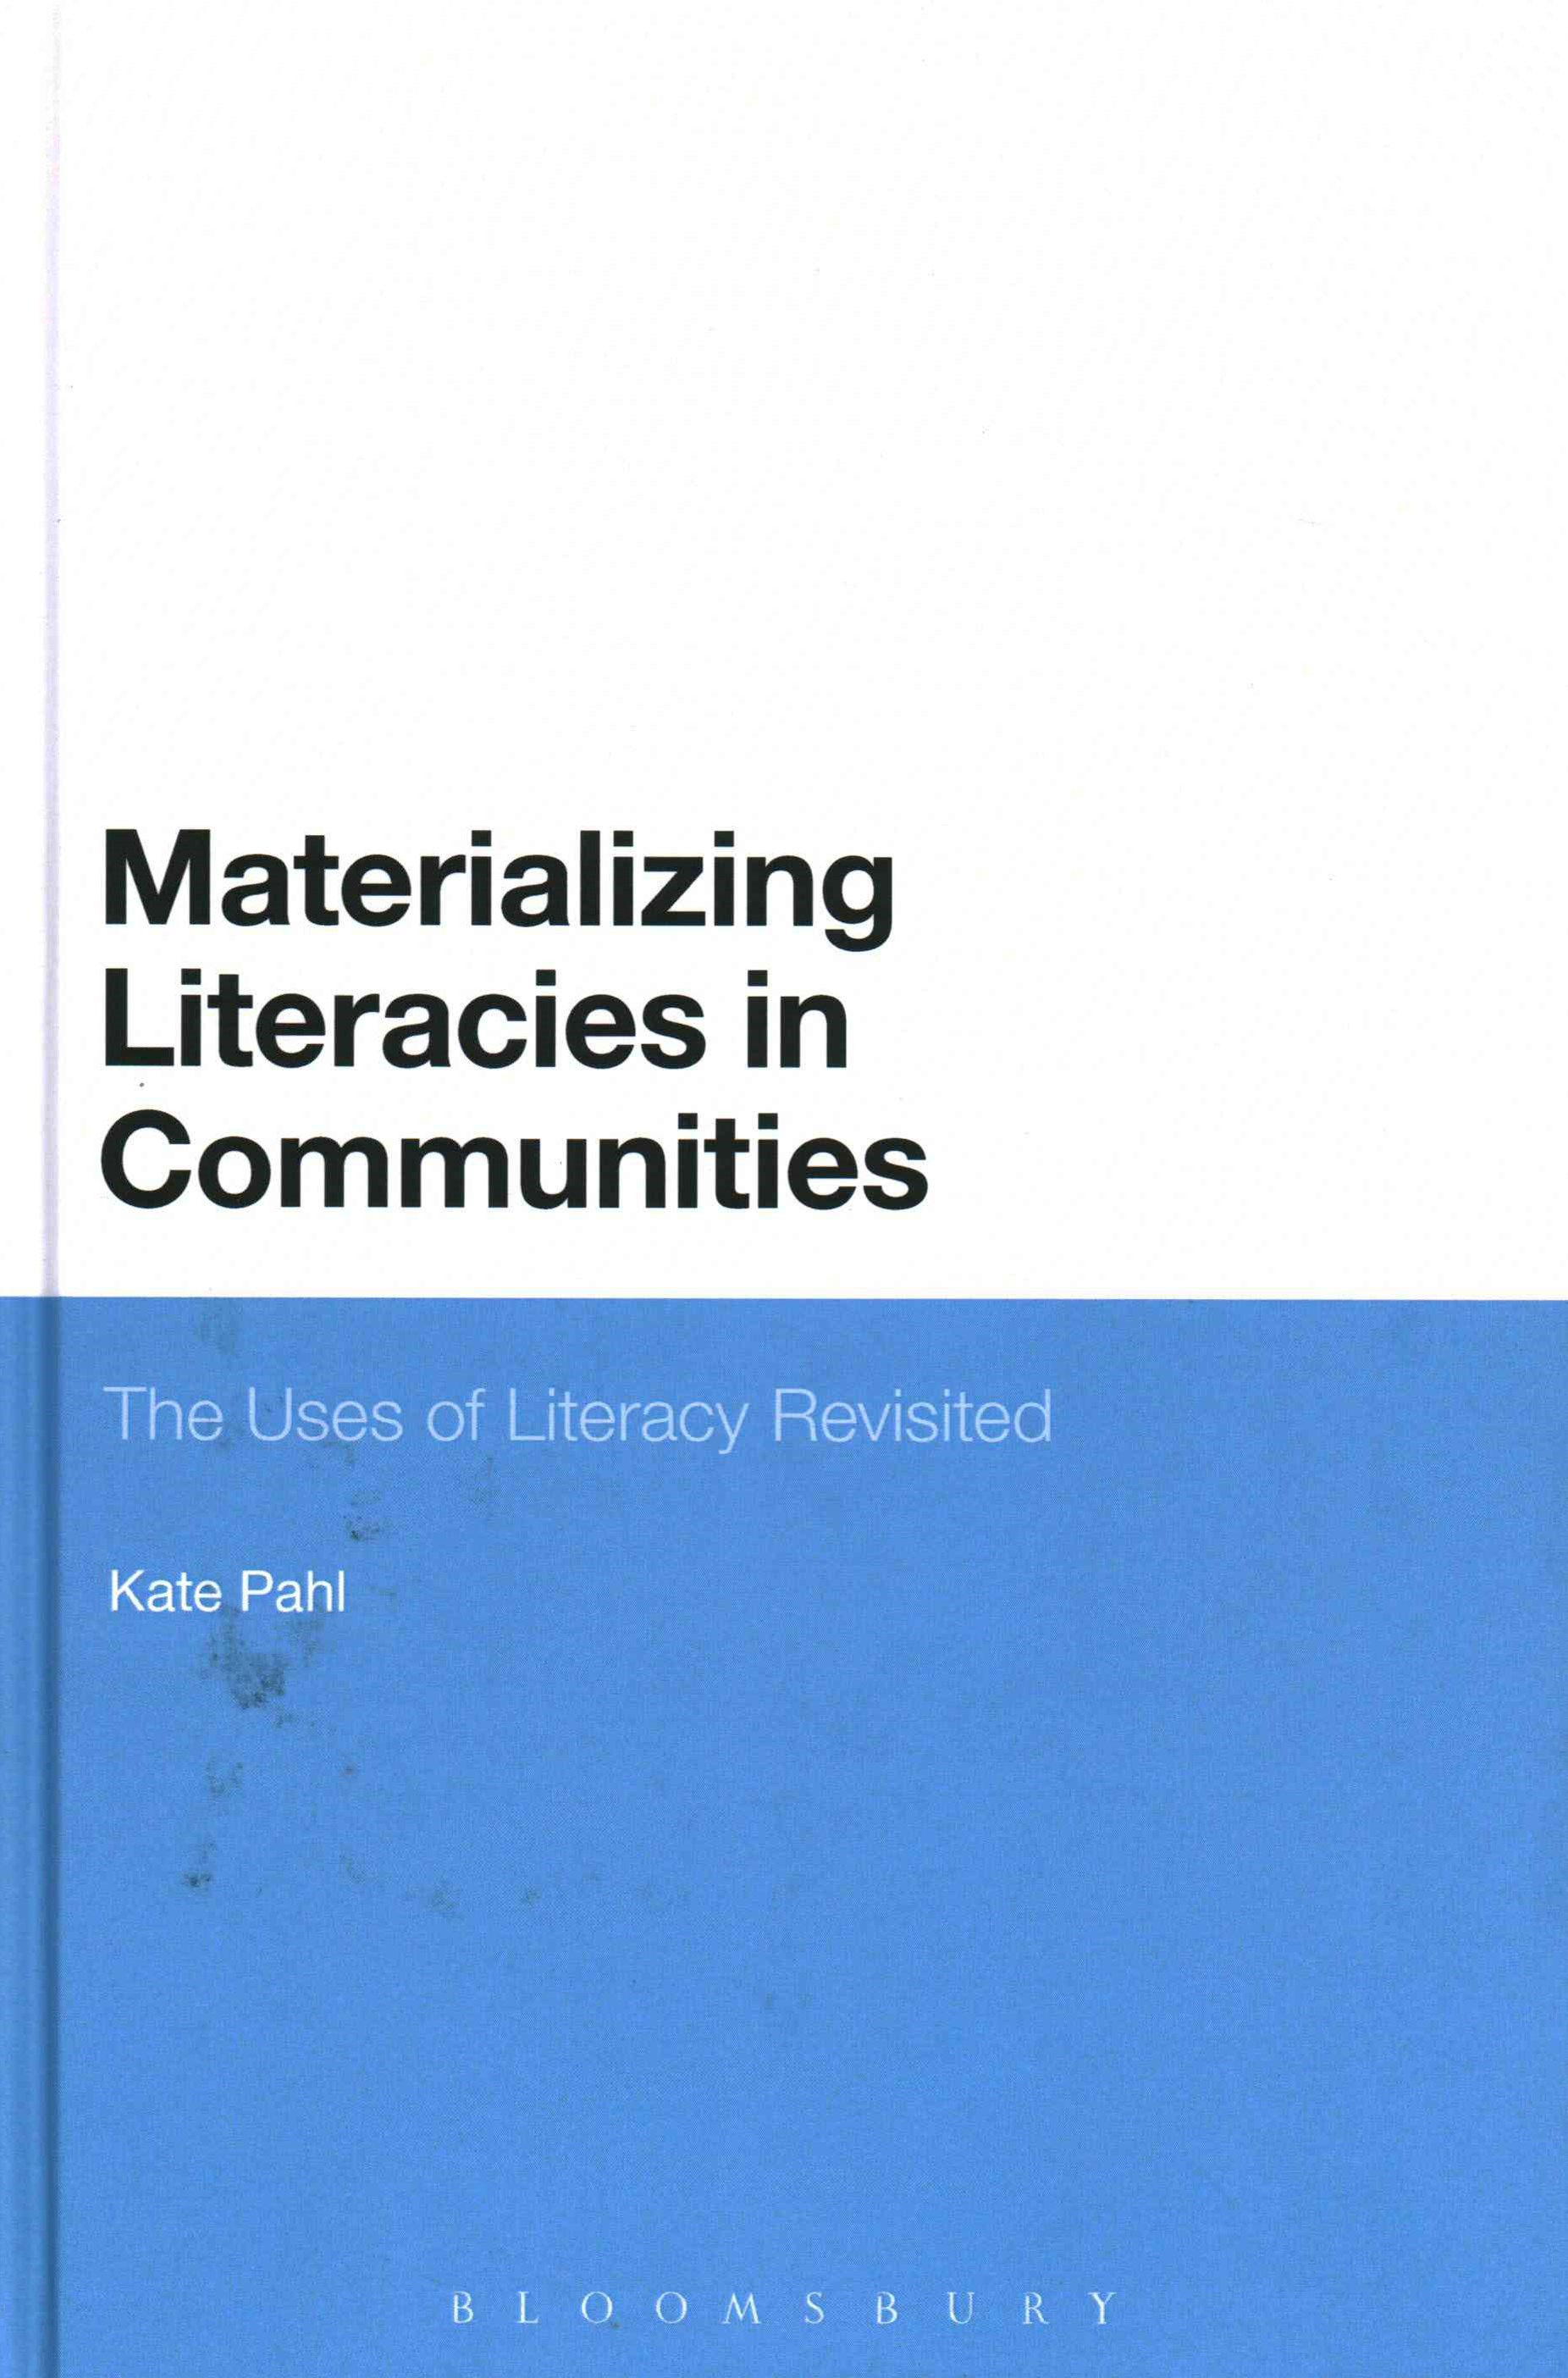 Materializing Literacies in Communities